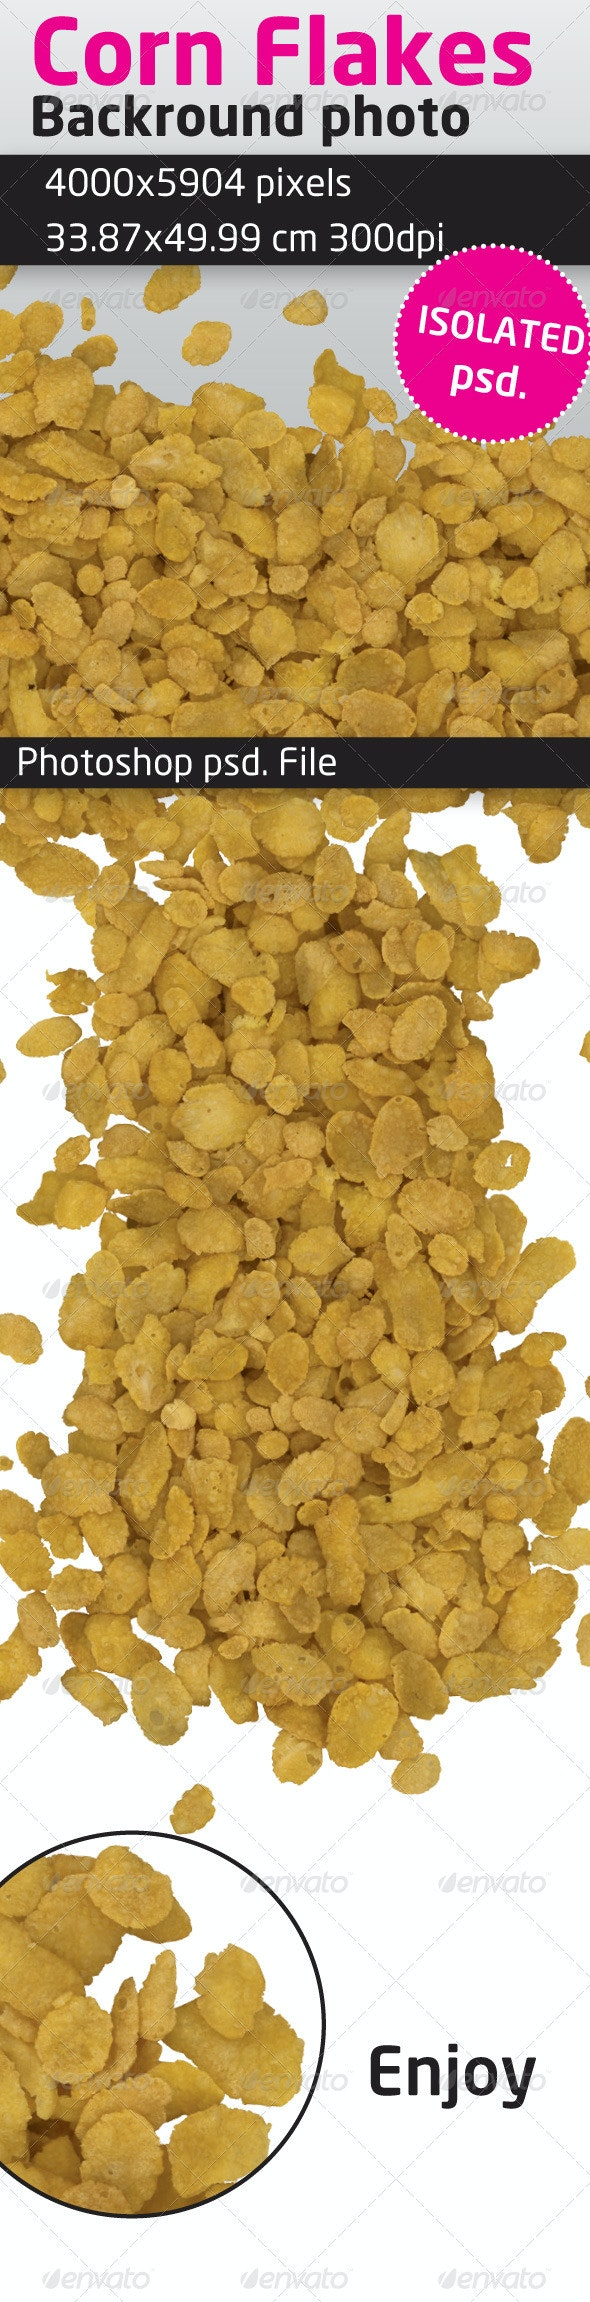 Corn Flakes Isolated Backround - Food & Drink Isolated Objects